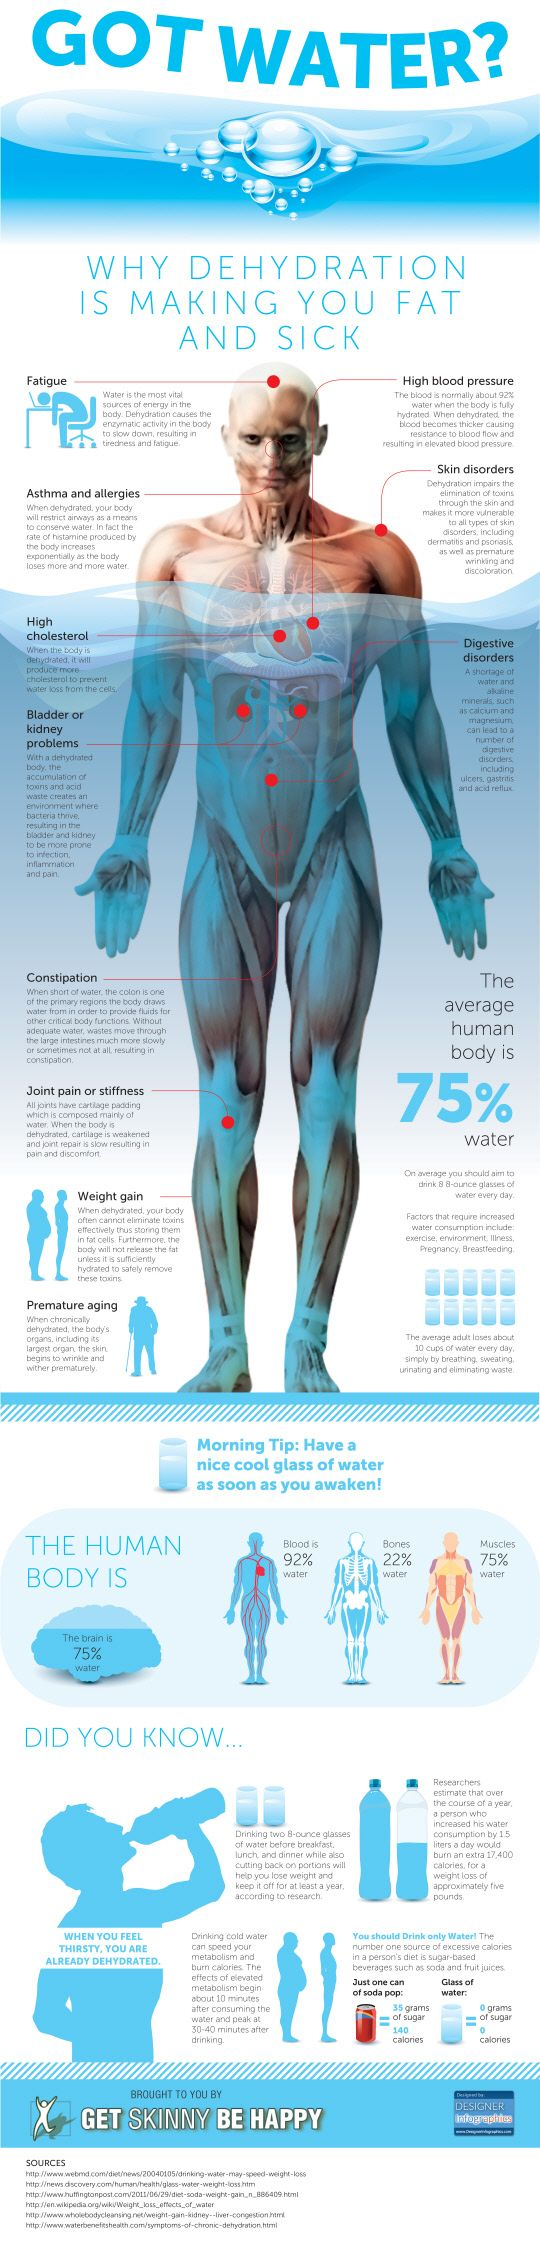 Got Water? Why Dehydration is Making you Fat and Sick – Infographic